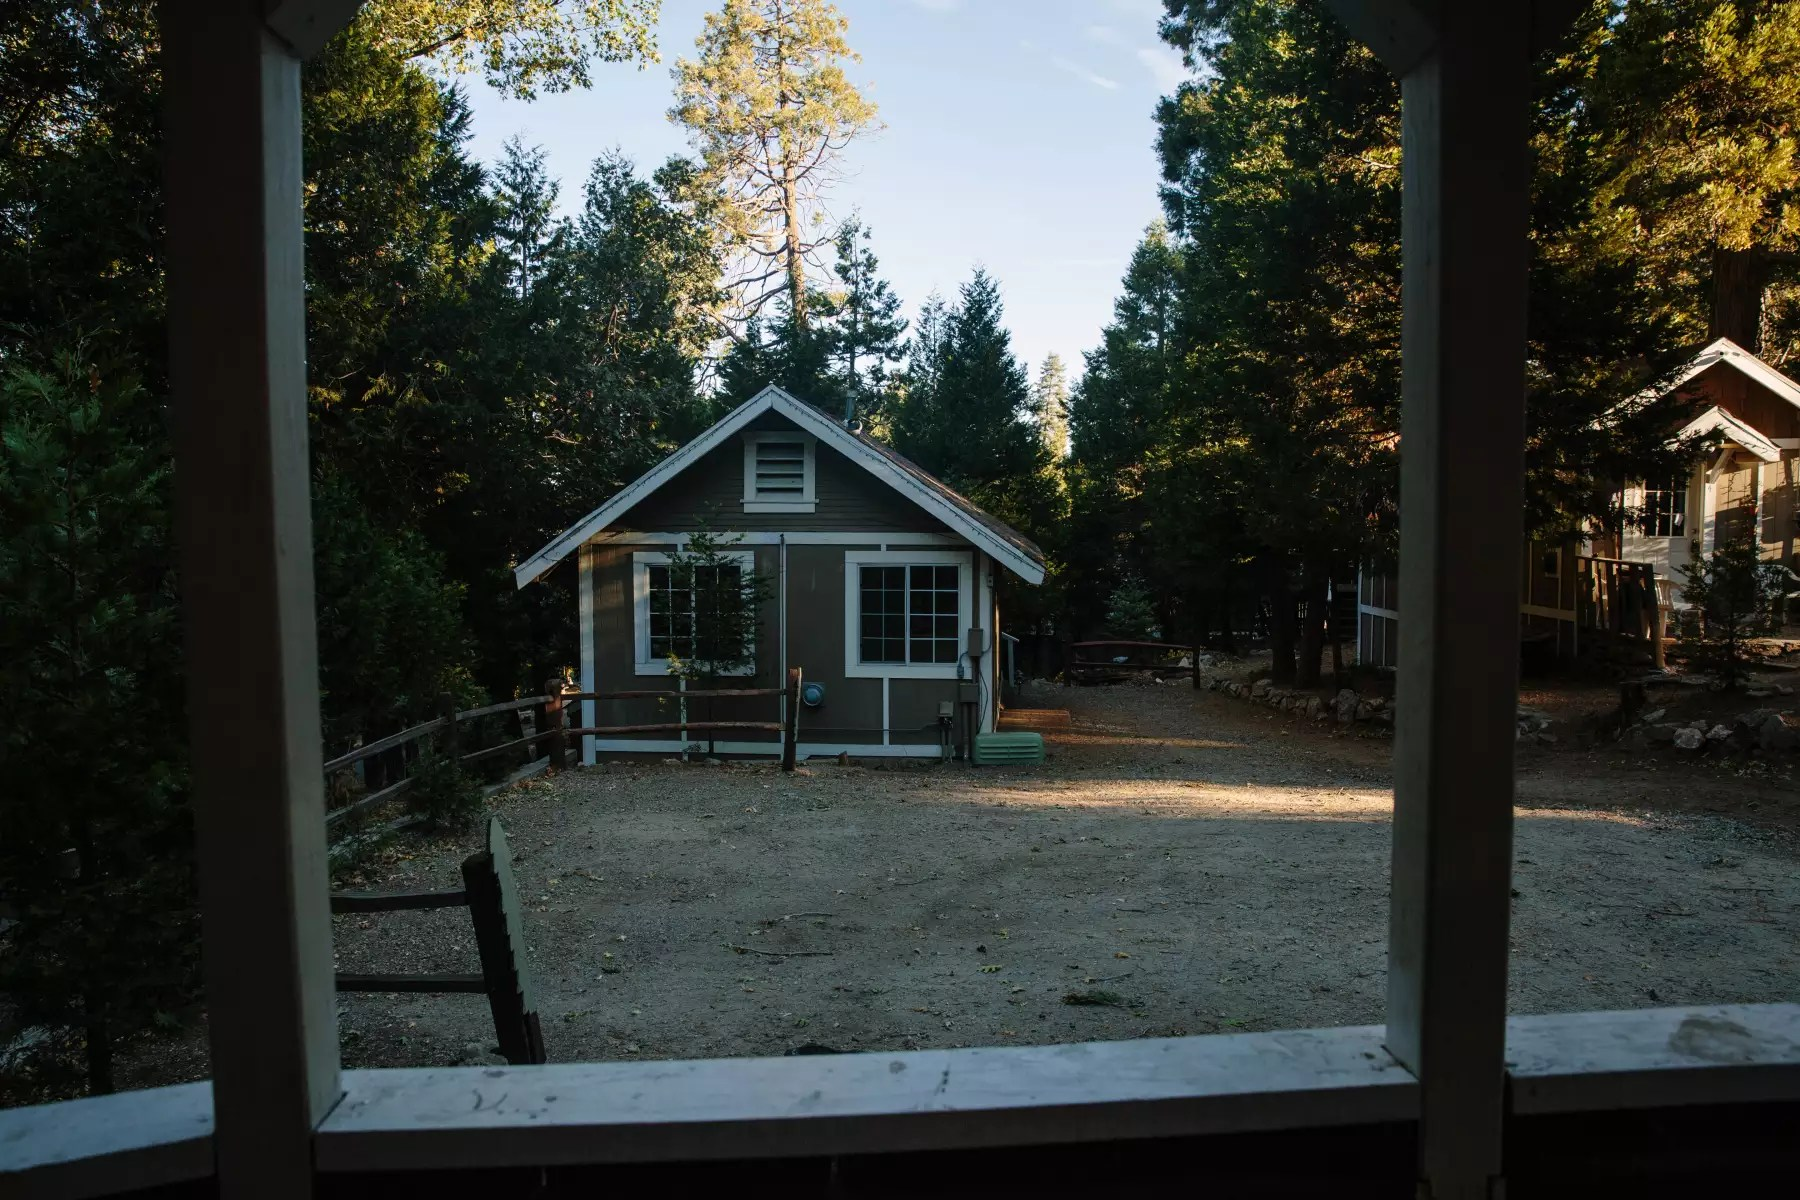 Cute Cabin In The Woods Antlers Inn Forest Cabins CA 3